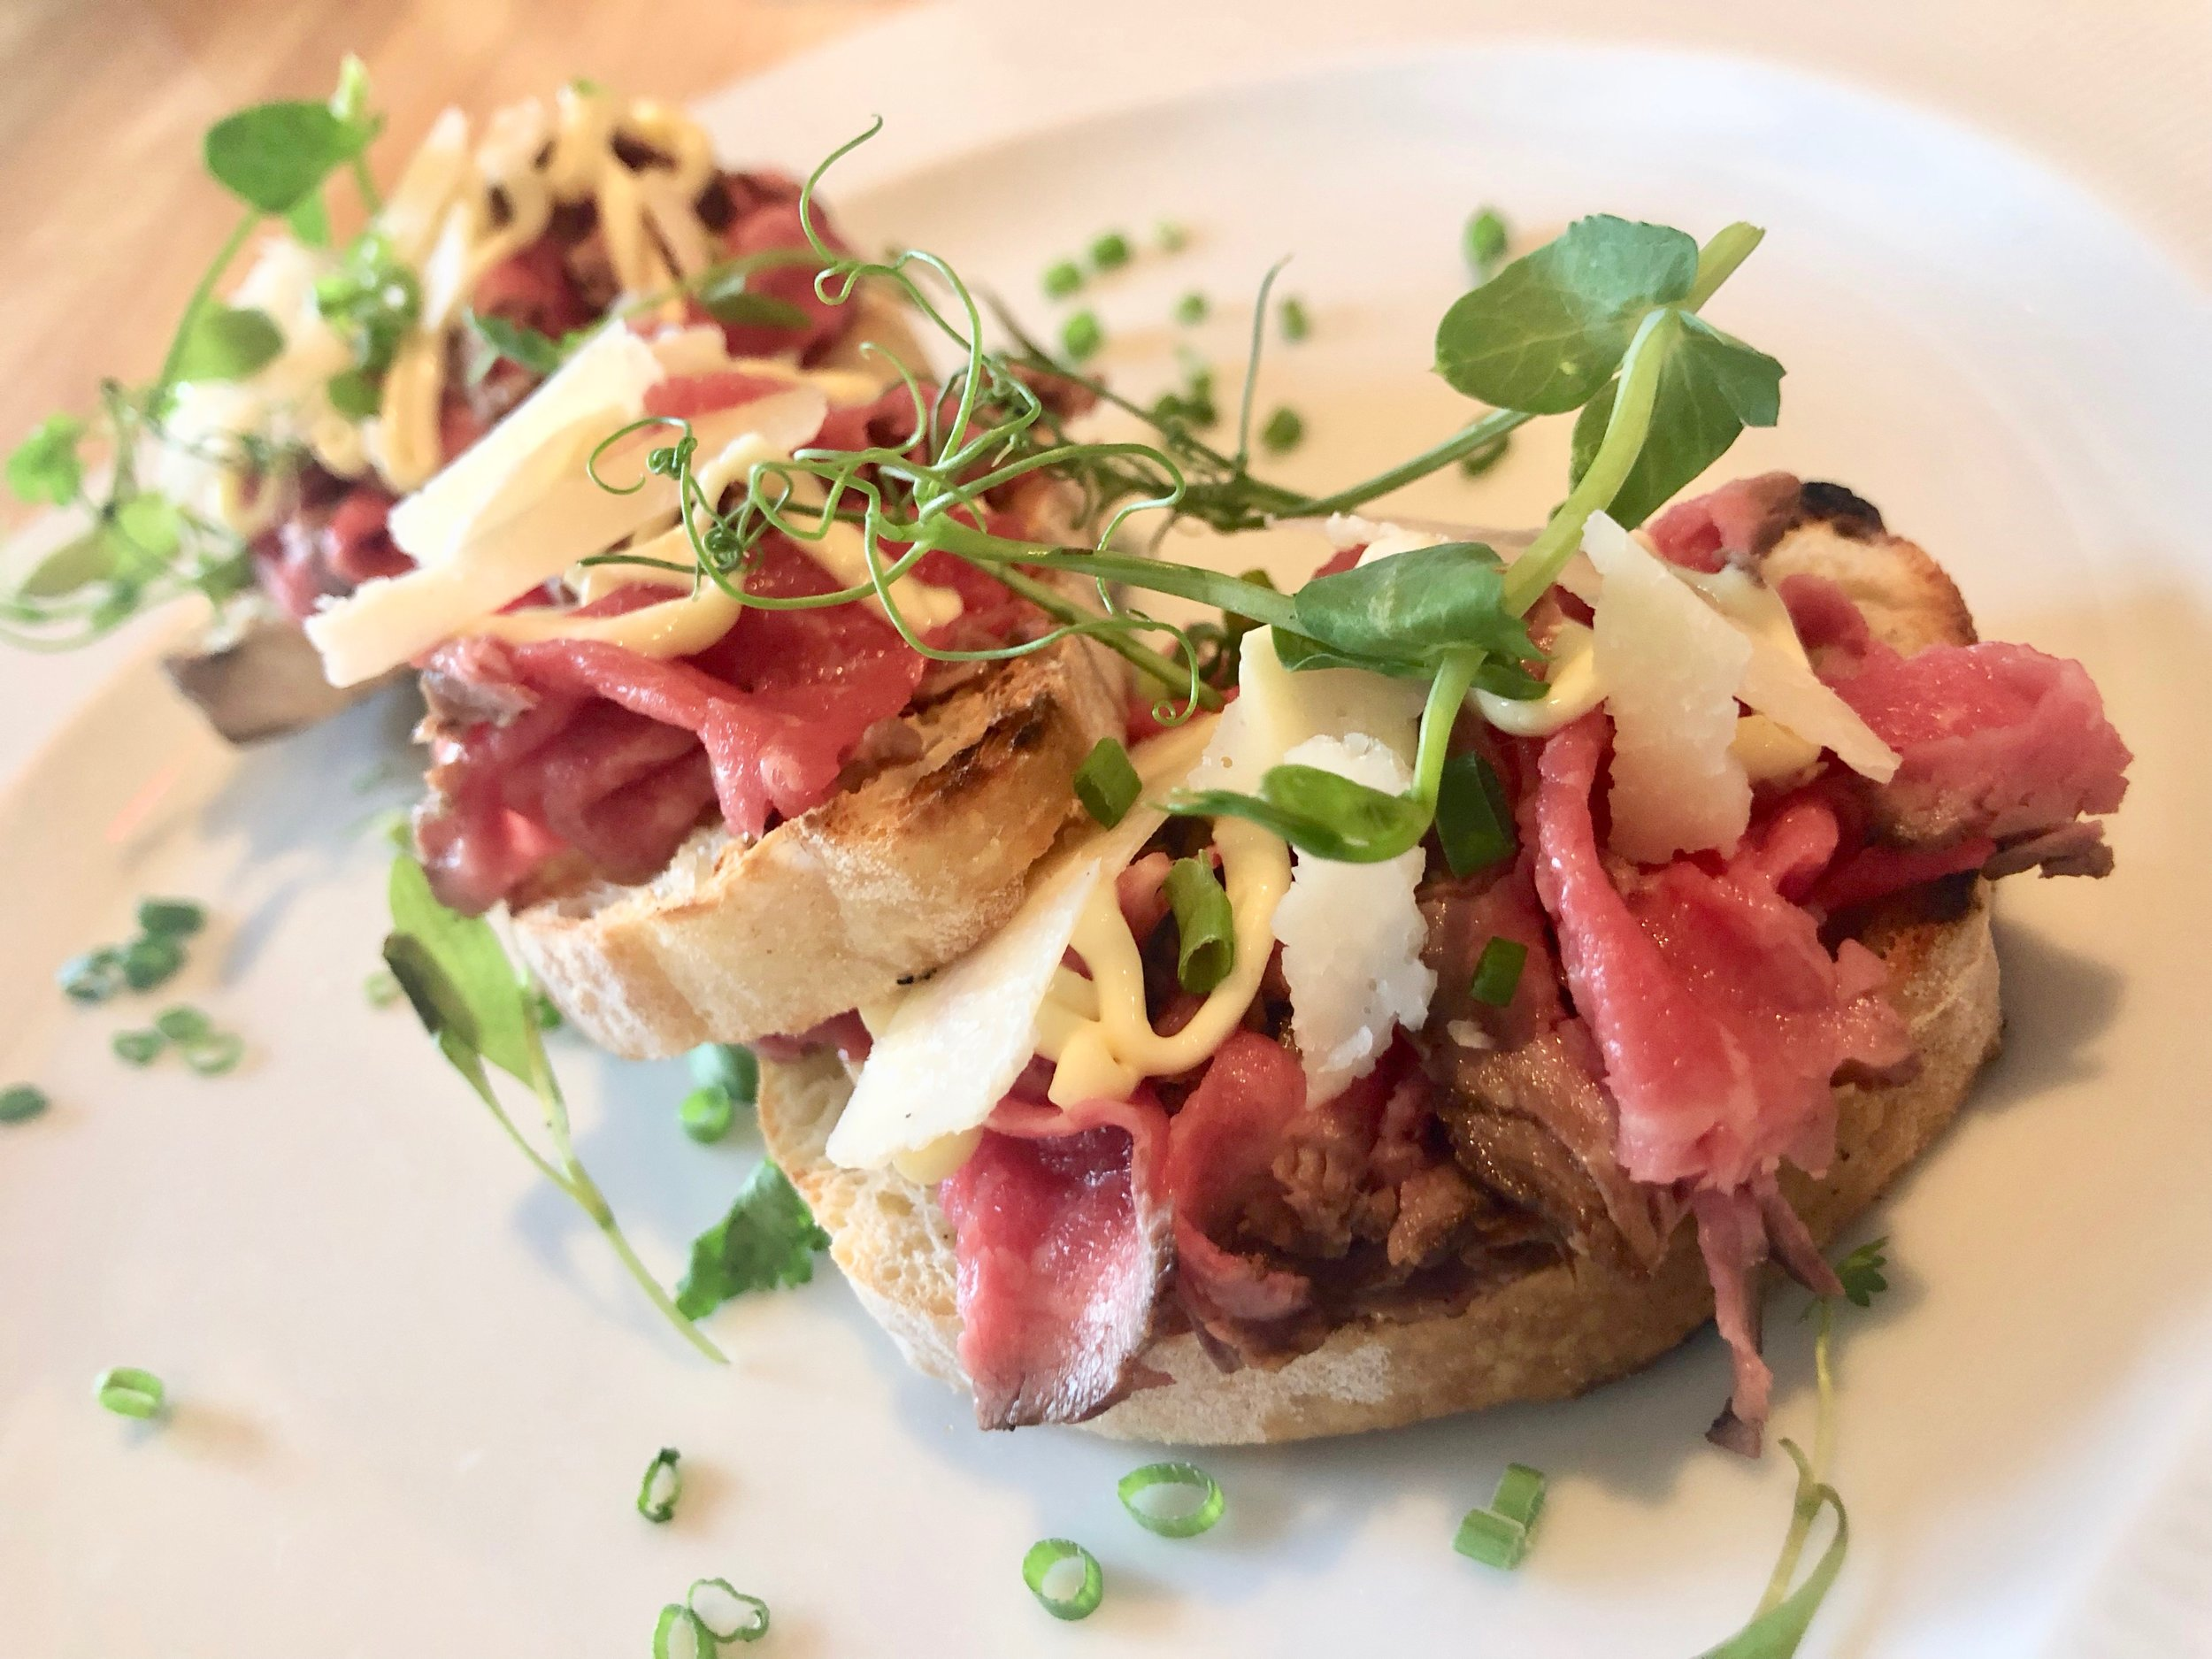 Ravello – Bruchetta Albese. Country bread topped with beef tenderloin, truffle aioli, lemon and parmesan. It's a meal, really. Gobble, then pack the rest to go.